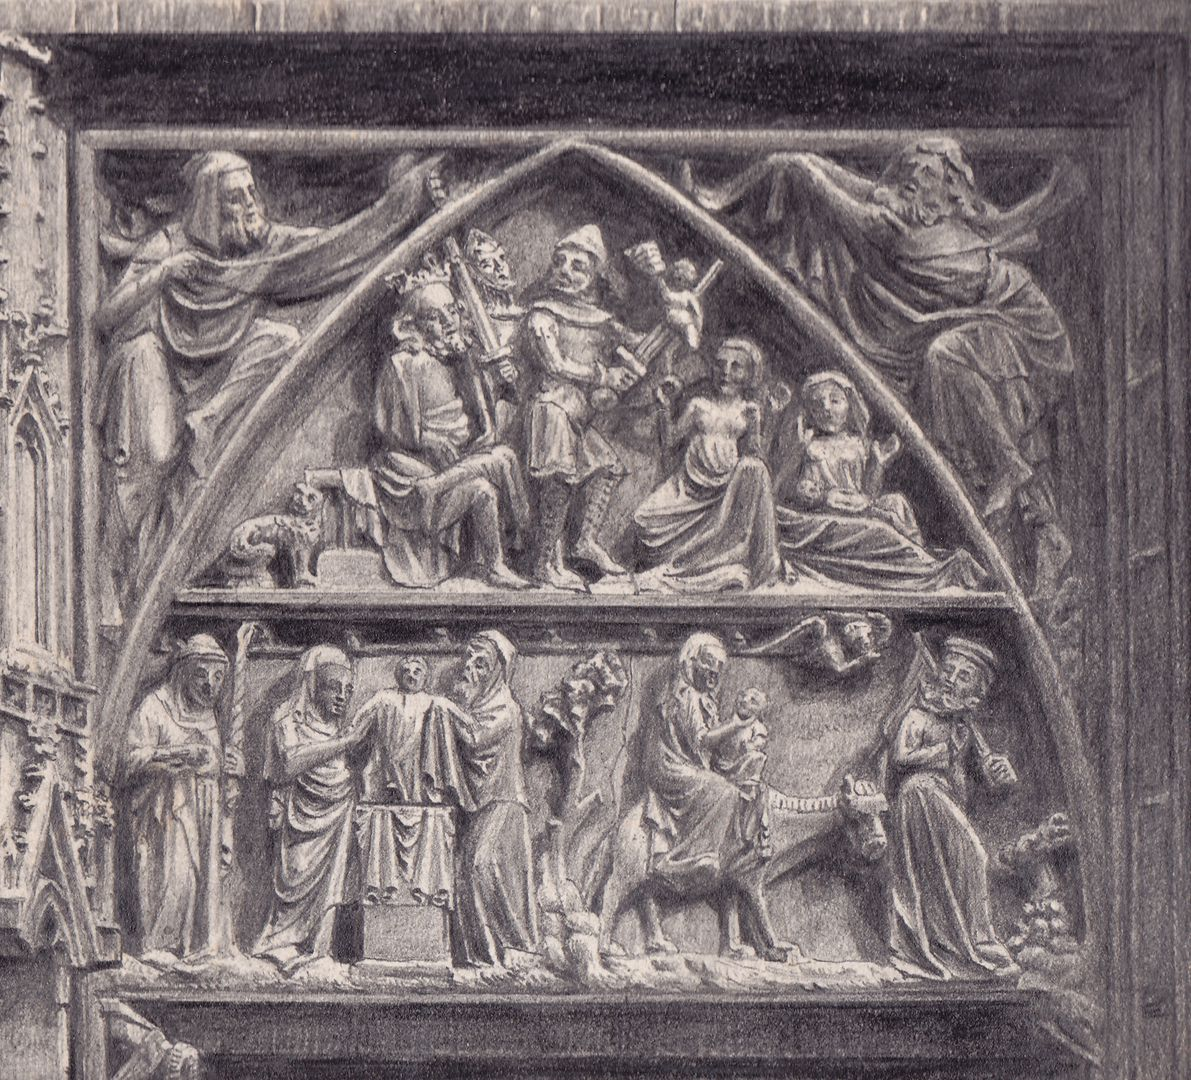 Tympanum register of the main portal of St. Lorenz Church Detail of the south half